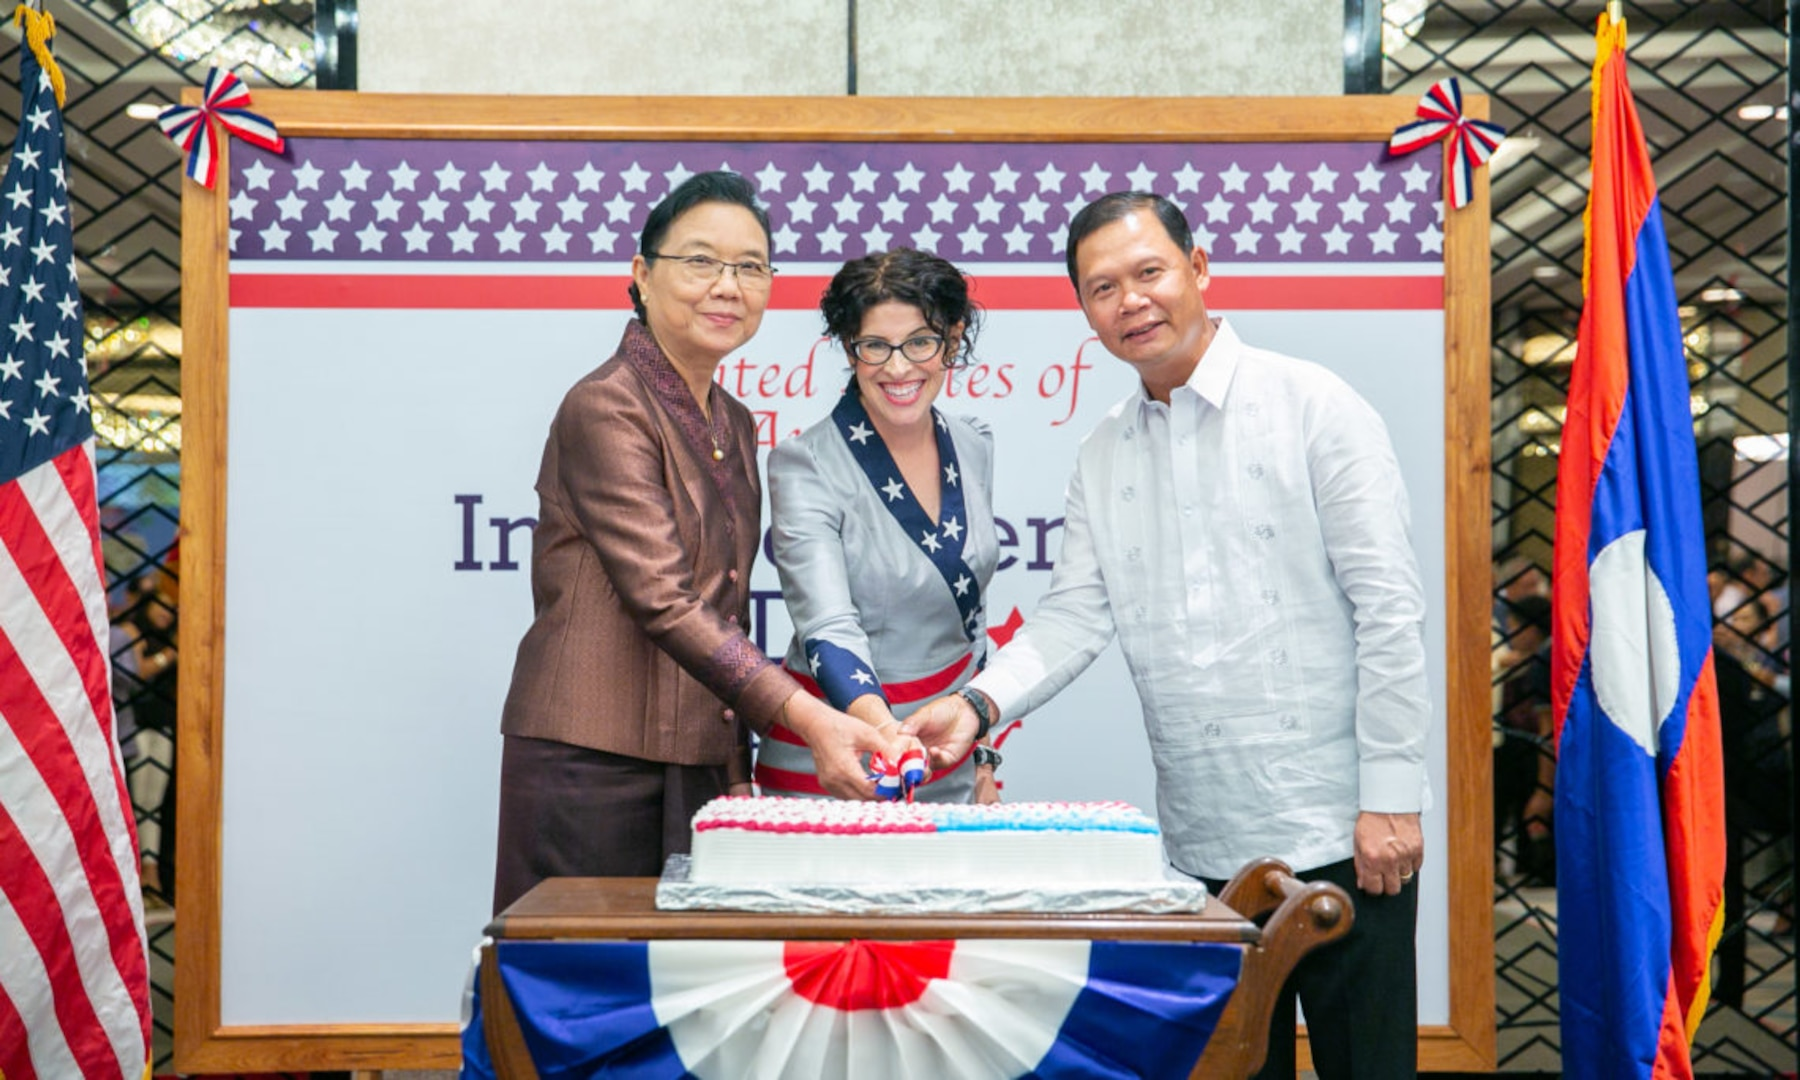 U.S. Embassy Celebrates Independence Day, Highlights Strong Bilateral Relations